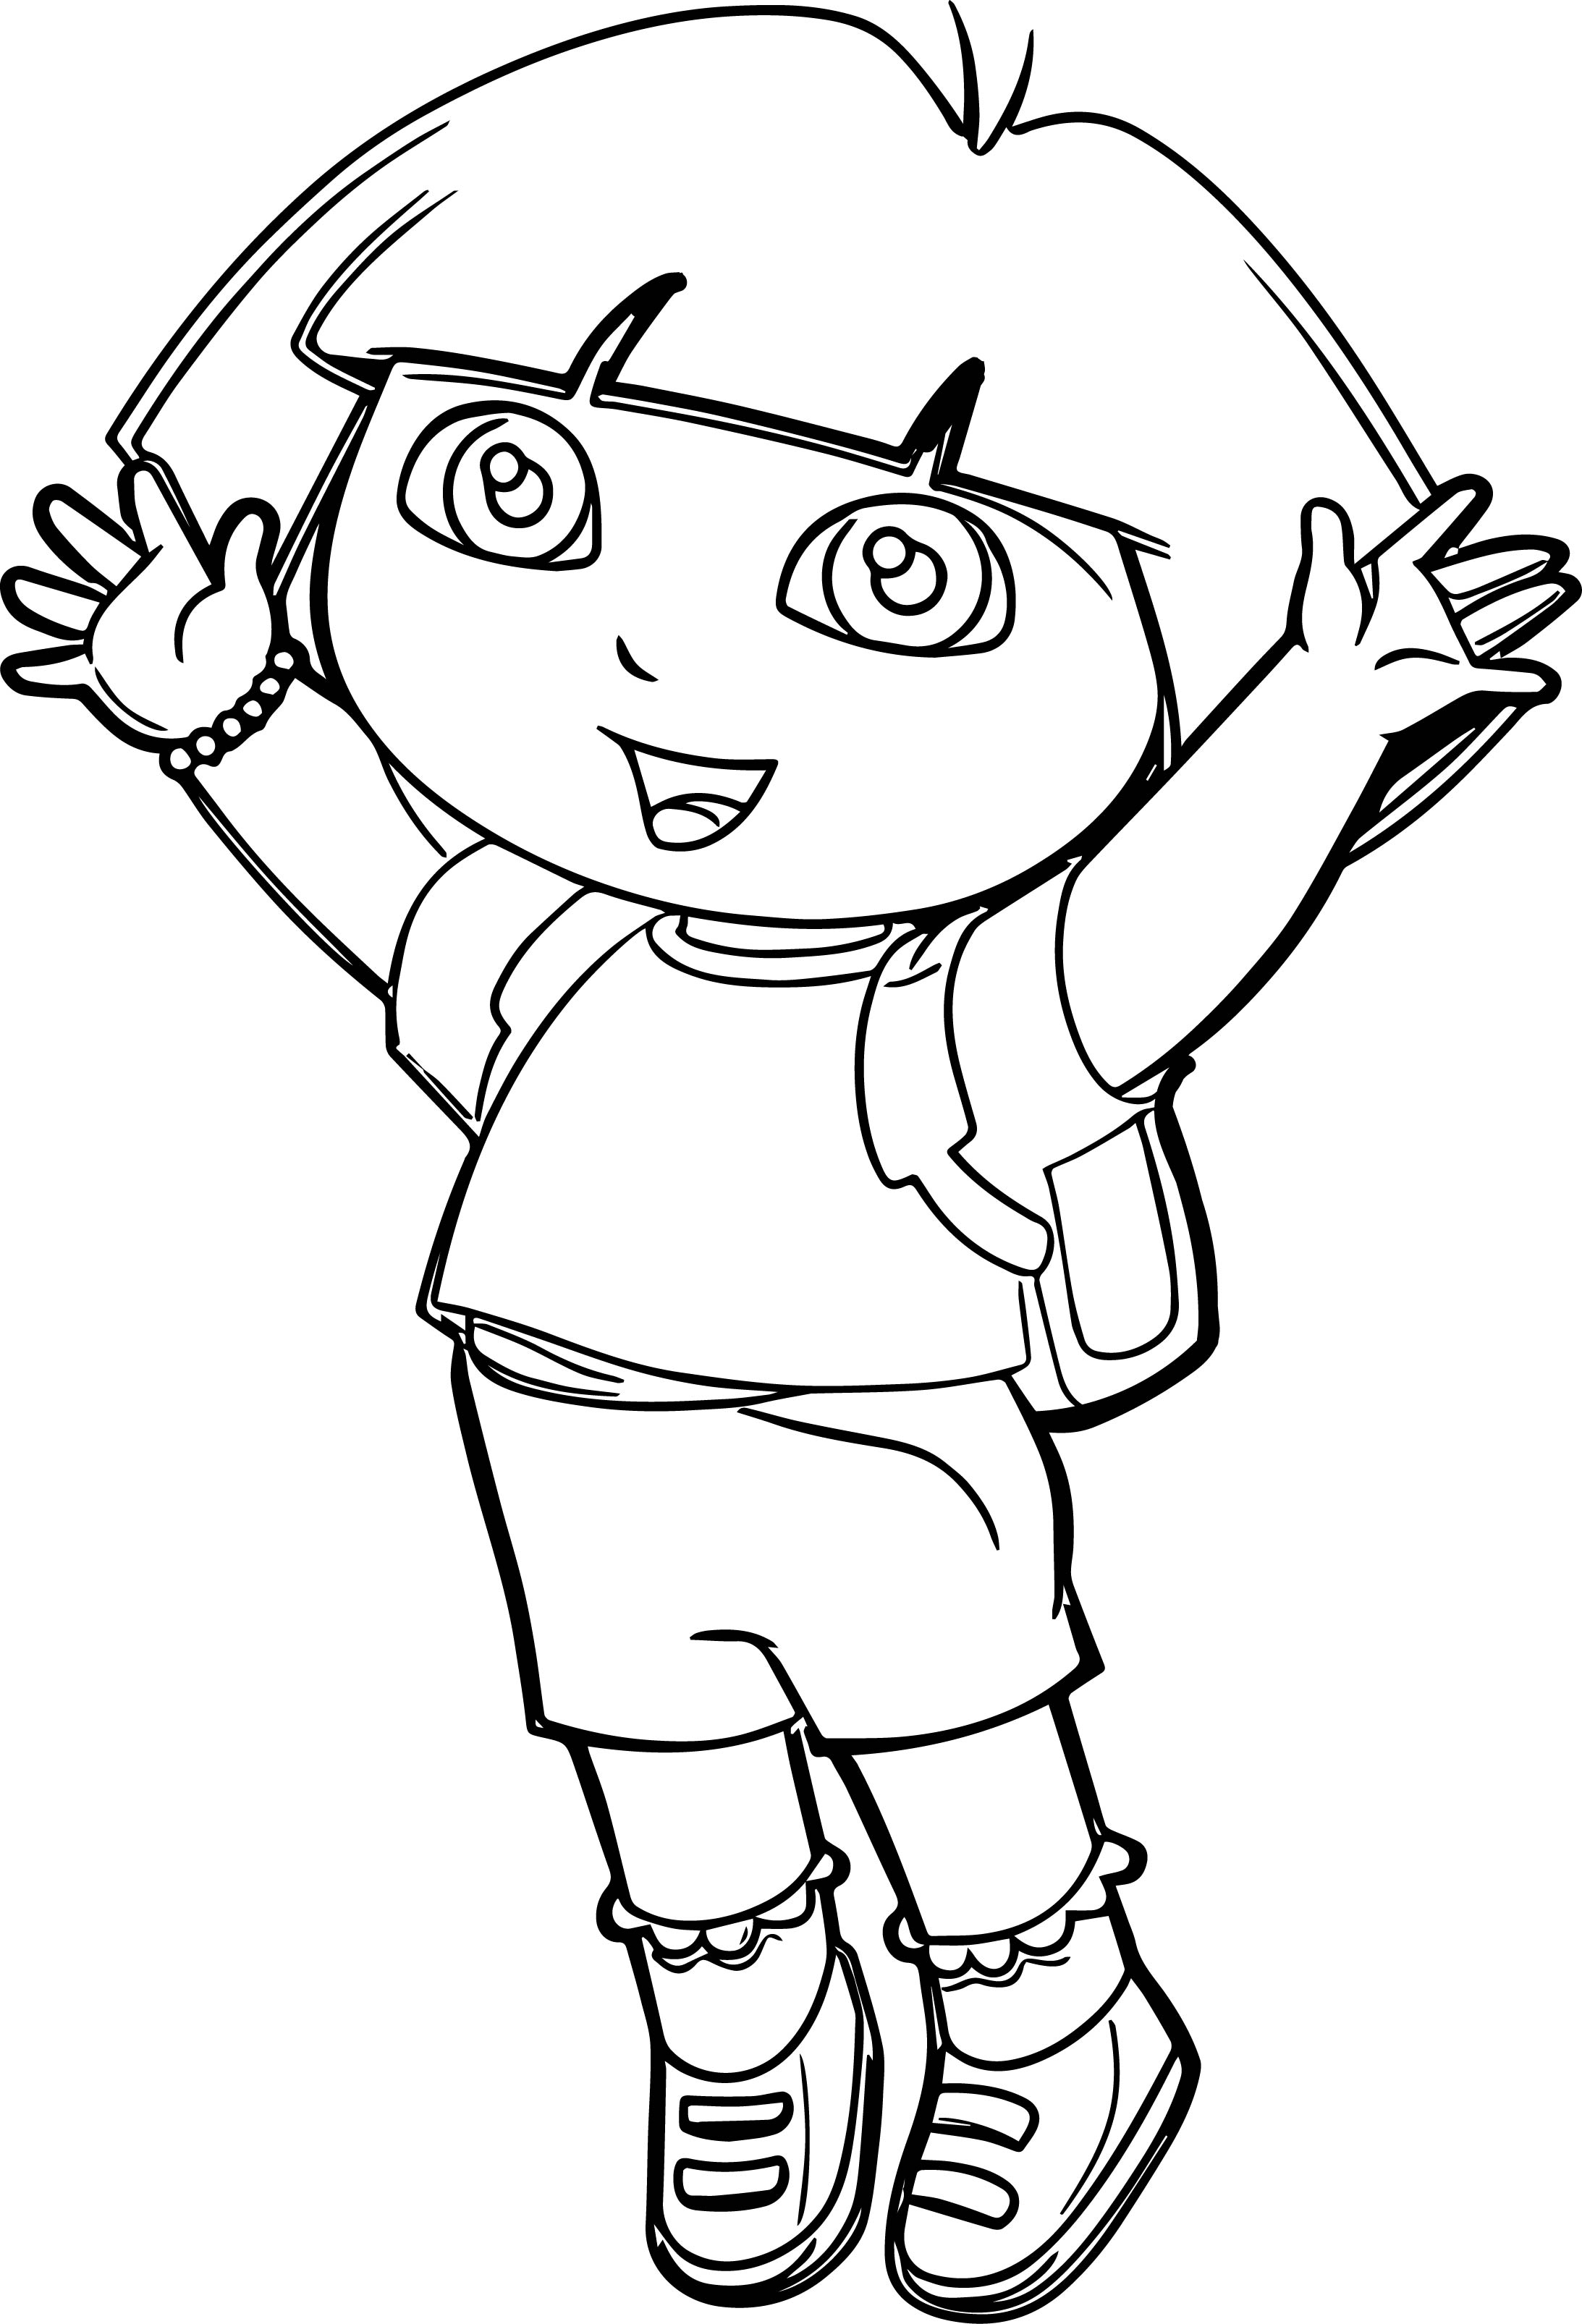 dora the explorer coloring pages - dora explorer going school coloring page